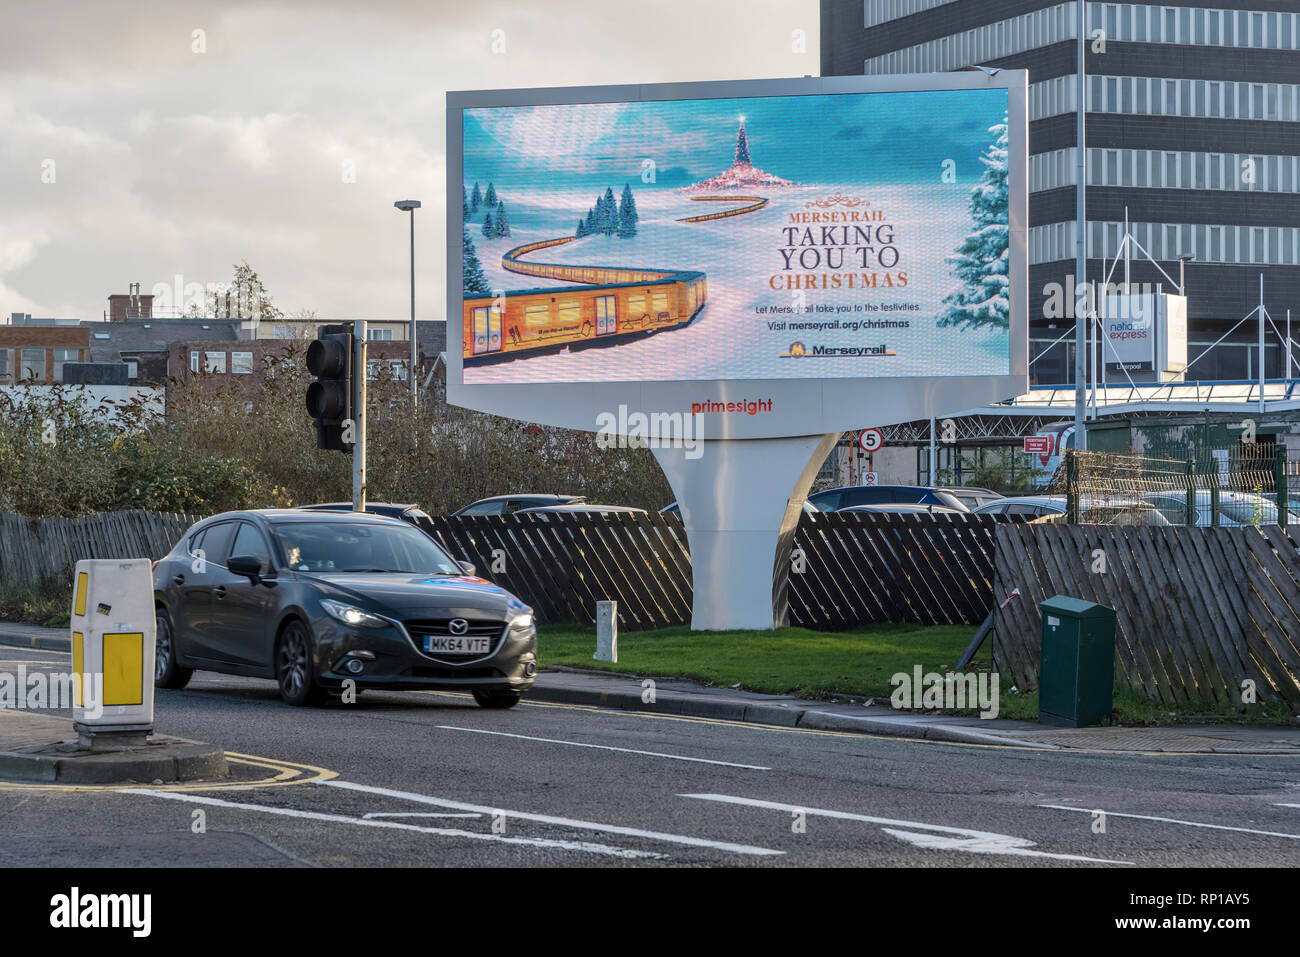 electronic adverts on street signs. - Stock Image